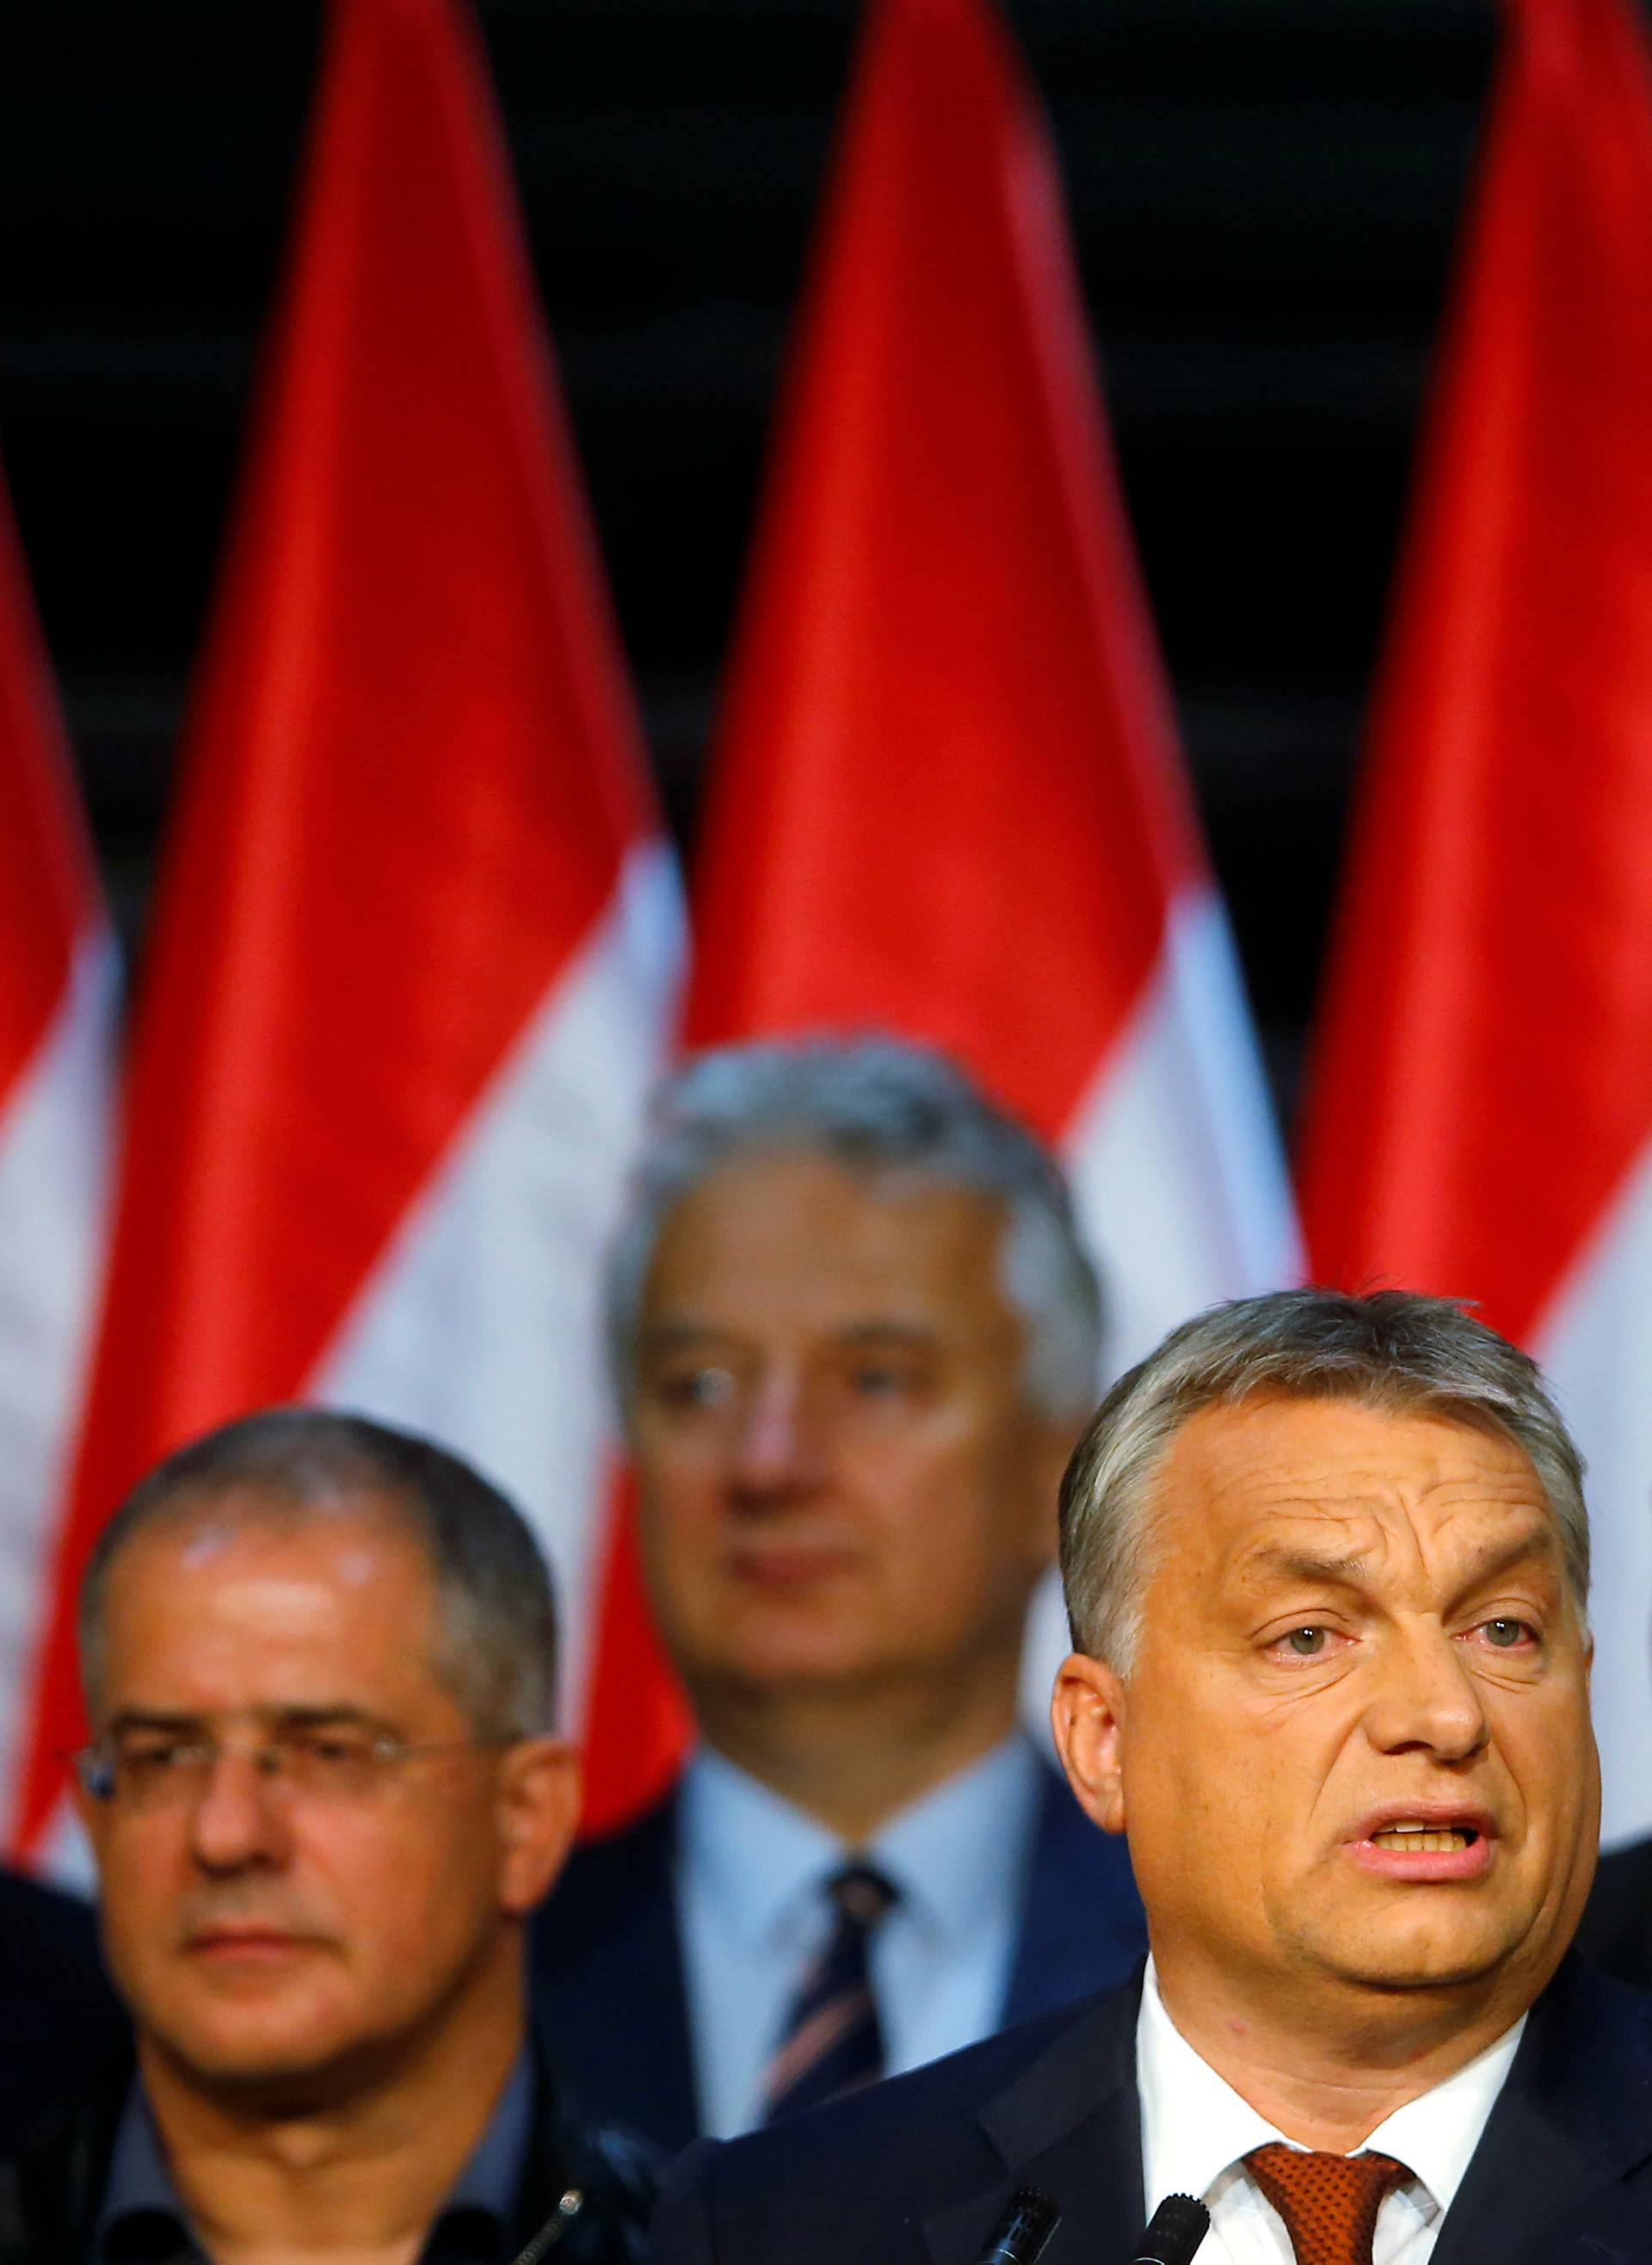 Hungarian Prime Minister Viktor Orban delivers a speech after a referendum on European Union's migrant quotas in Budapest